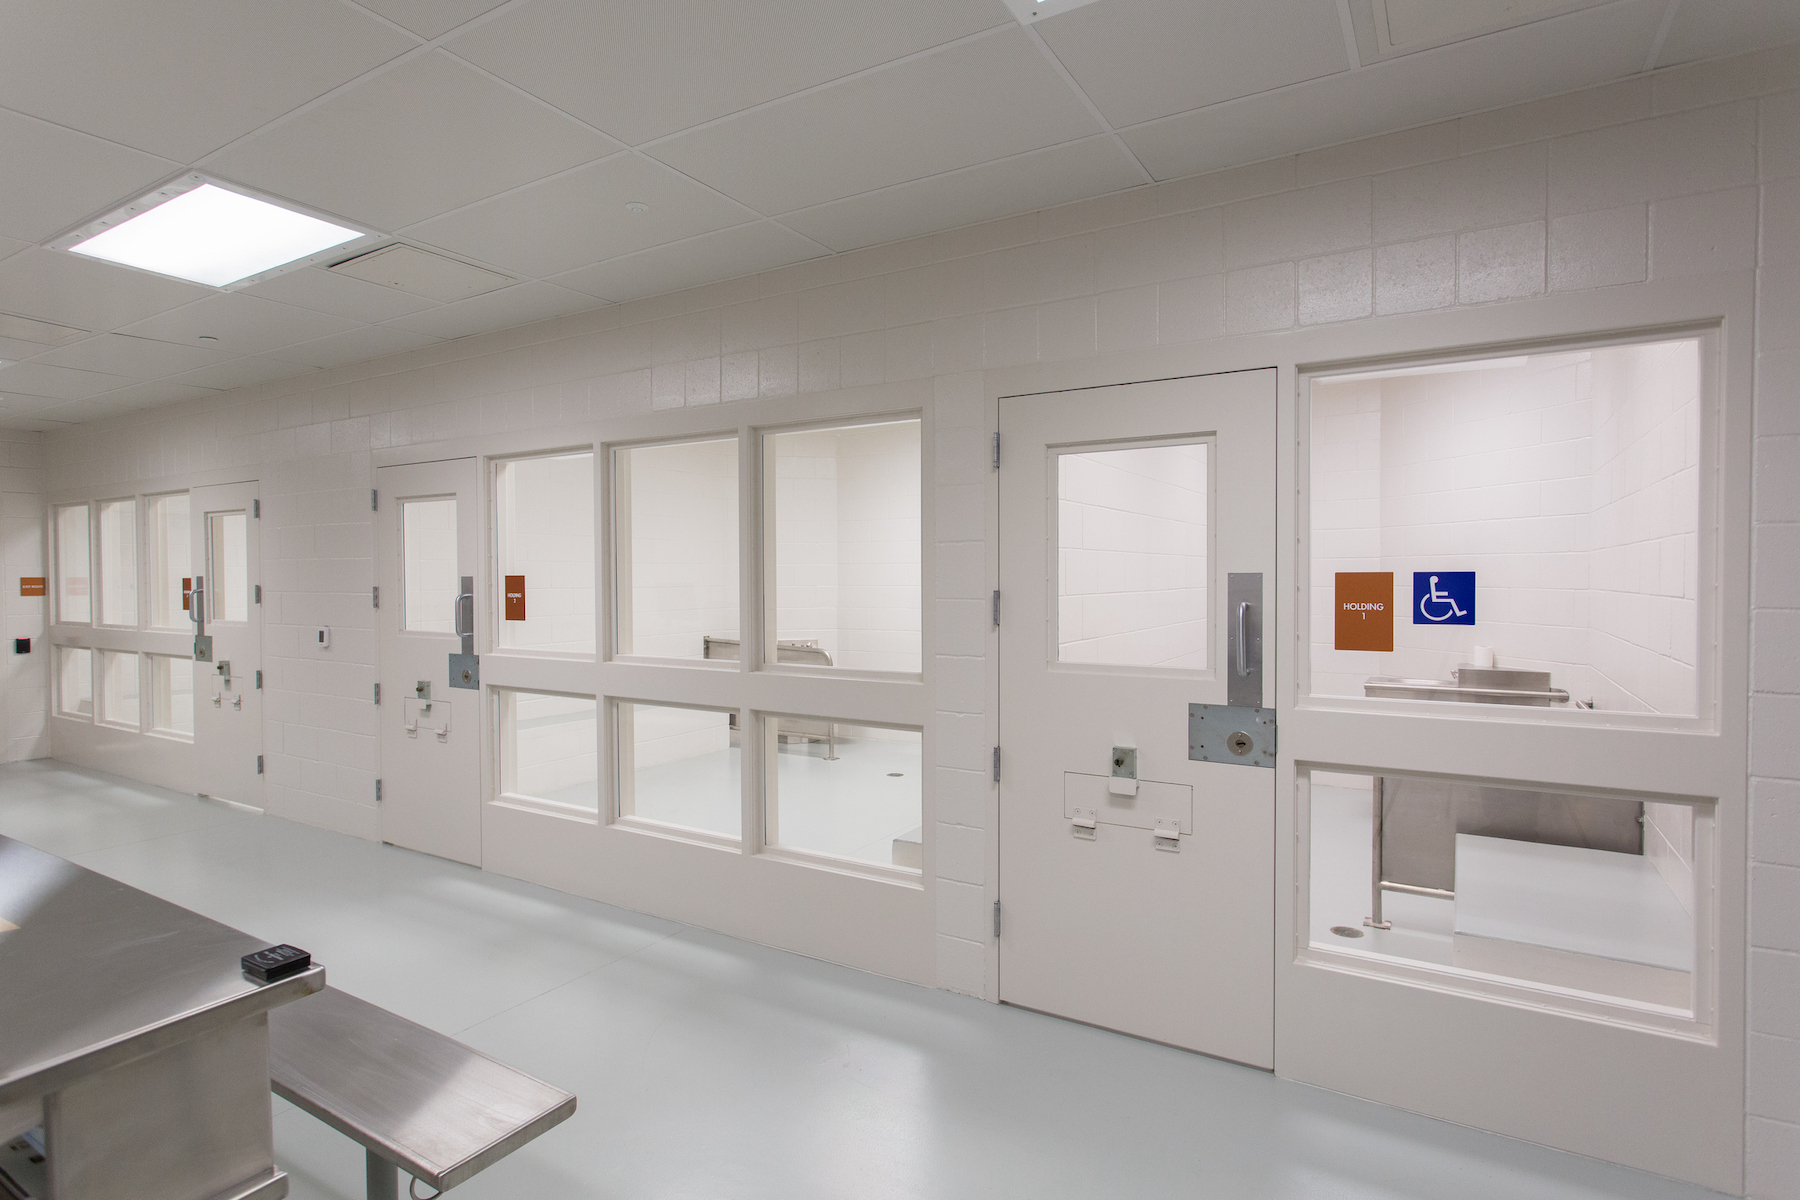 Inmate Classifications Affect Jail Design